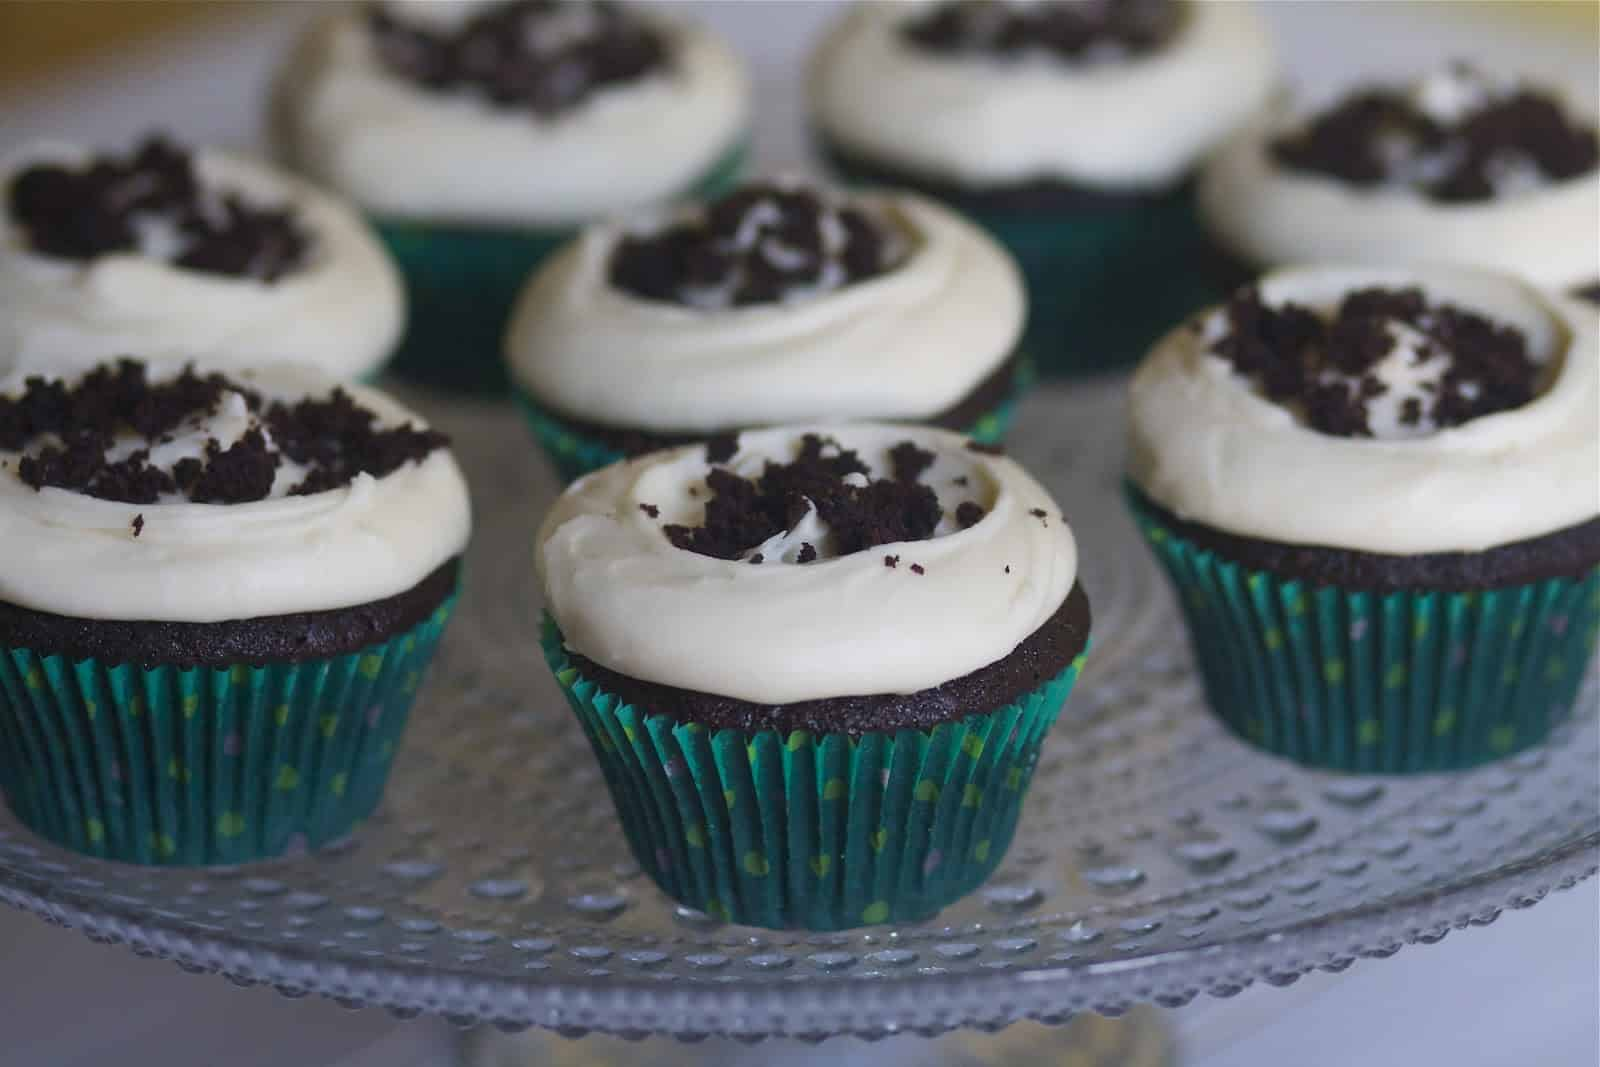 Come Home To Mama Chocolate Cake Recipe: Chocolate Guiniess Cupcakes With Bailey's Cream Cheese